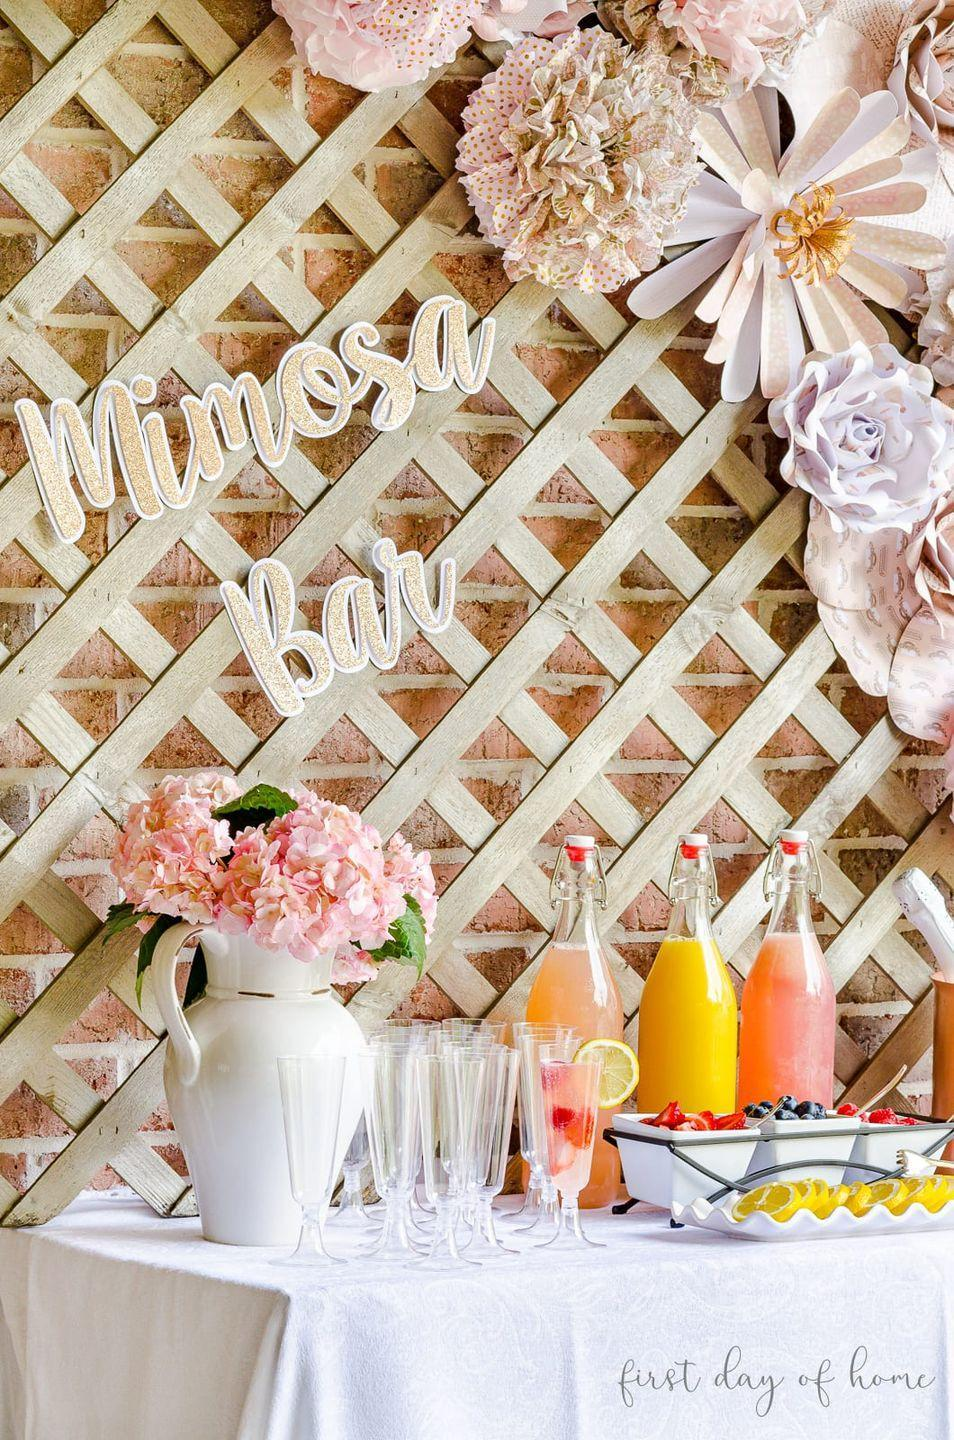 "<p>Not feeling a bar cart? Use a spare table to really spread out your mimosa-making station. Add a white table cloth and vase full of flowers for a chic touch. If you want to go all out, add a glittery sign that lets folks know where the mimosa bar is at.</p><p>See more at <a href=""https://www.firstdayofhome.com/mimosa-bar-ideas/"" rel=""nofollow noopener"" target=""_blank"" data-ylk=""slk:First Day of Home"" class=""link rapid-noclick-resp"">First Day of Home</a>.</p>"